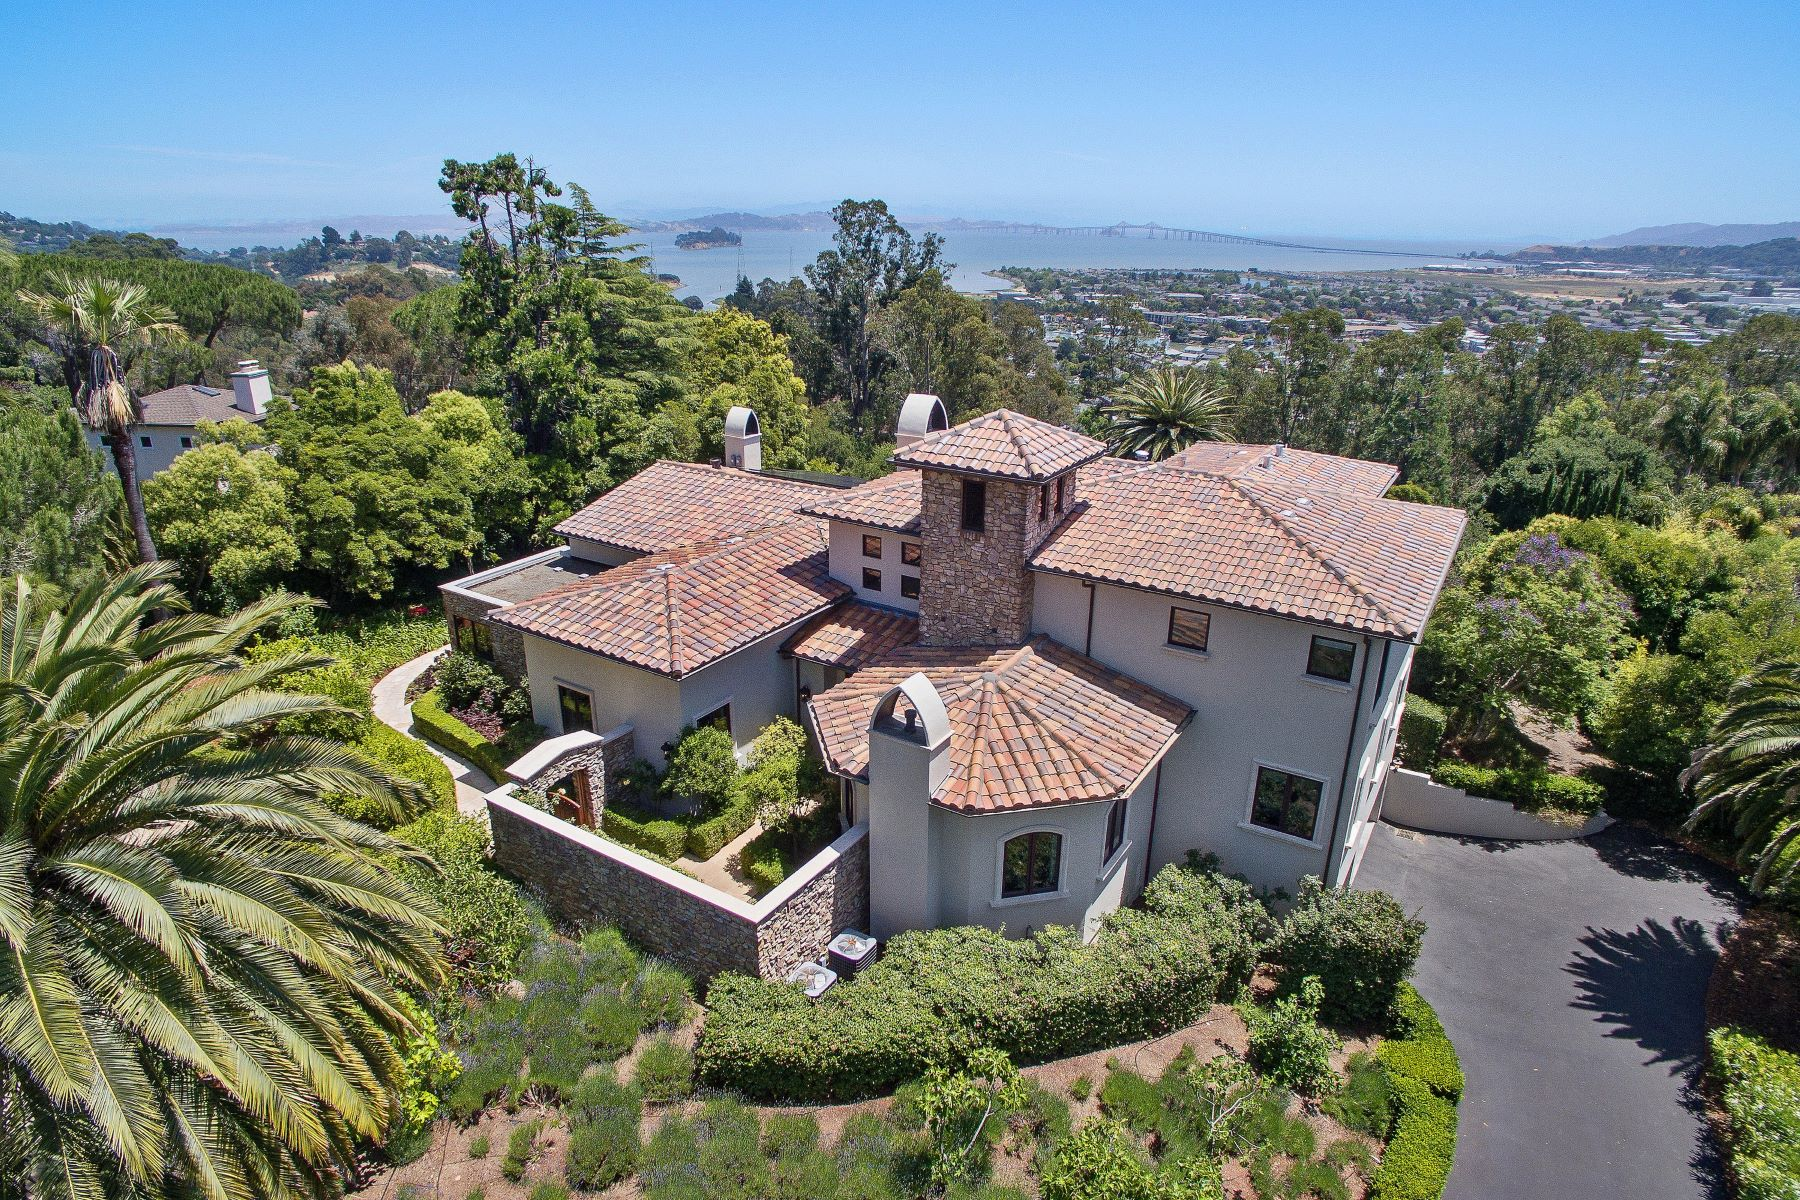 Single Family Home for Sale at Unique in Marin! 40 West Seaview San Rafael, California 94901 United States